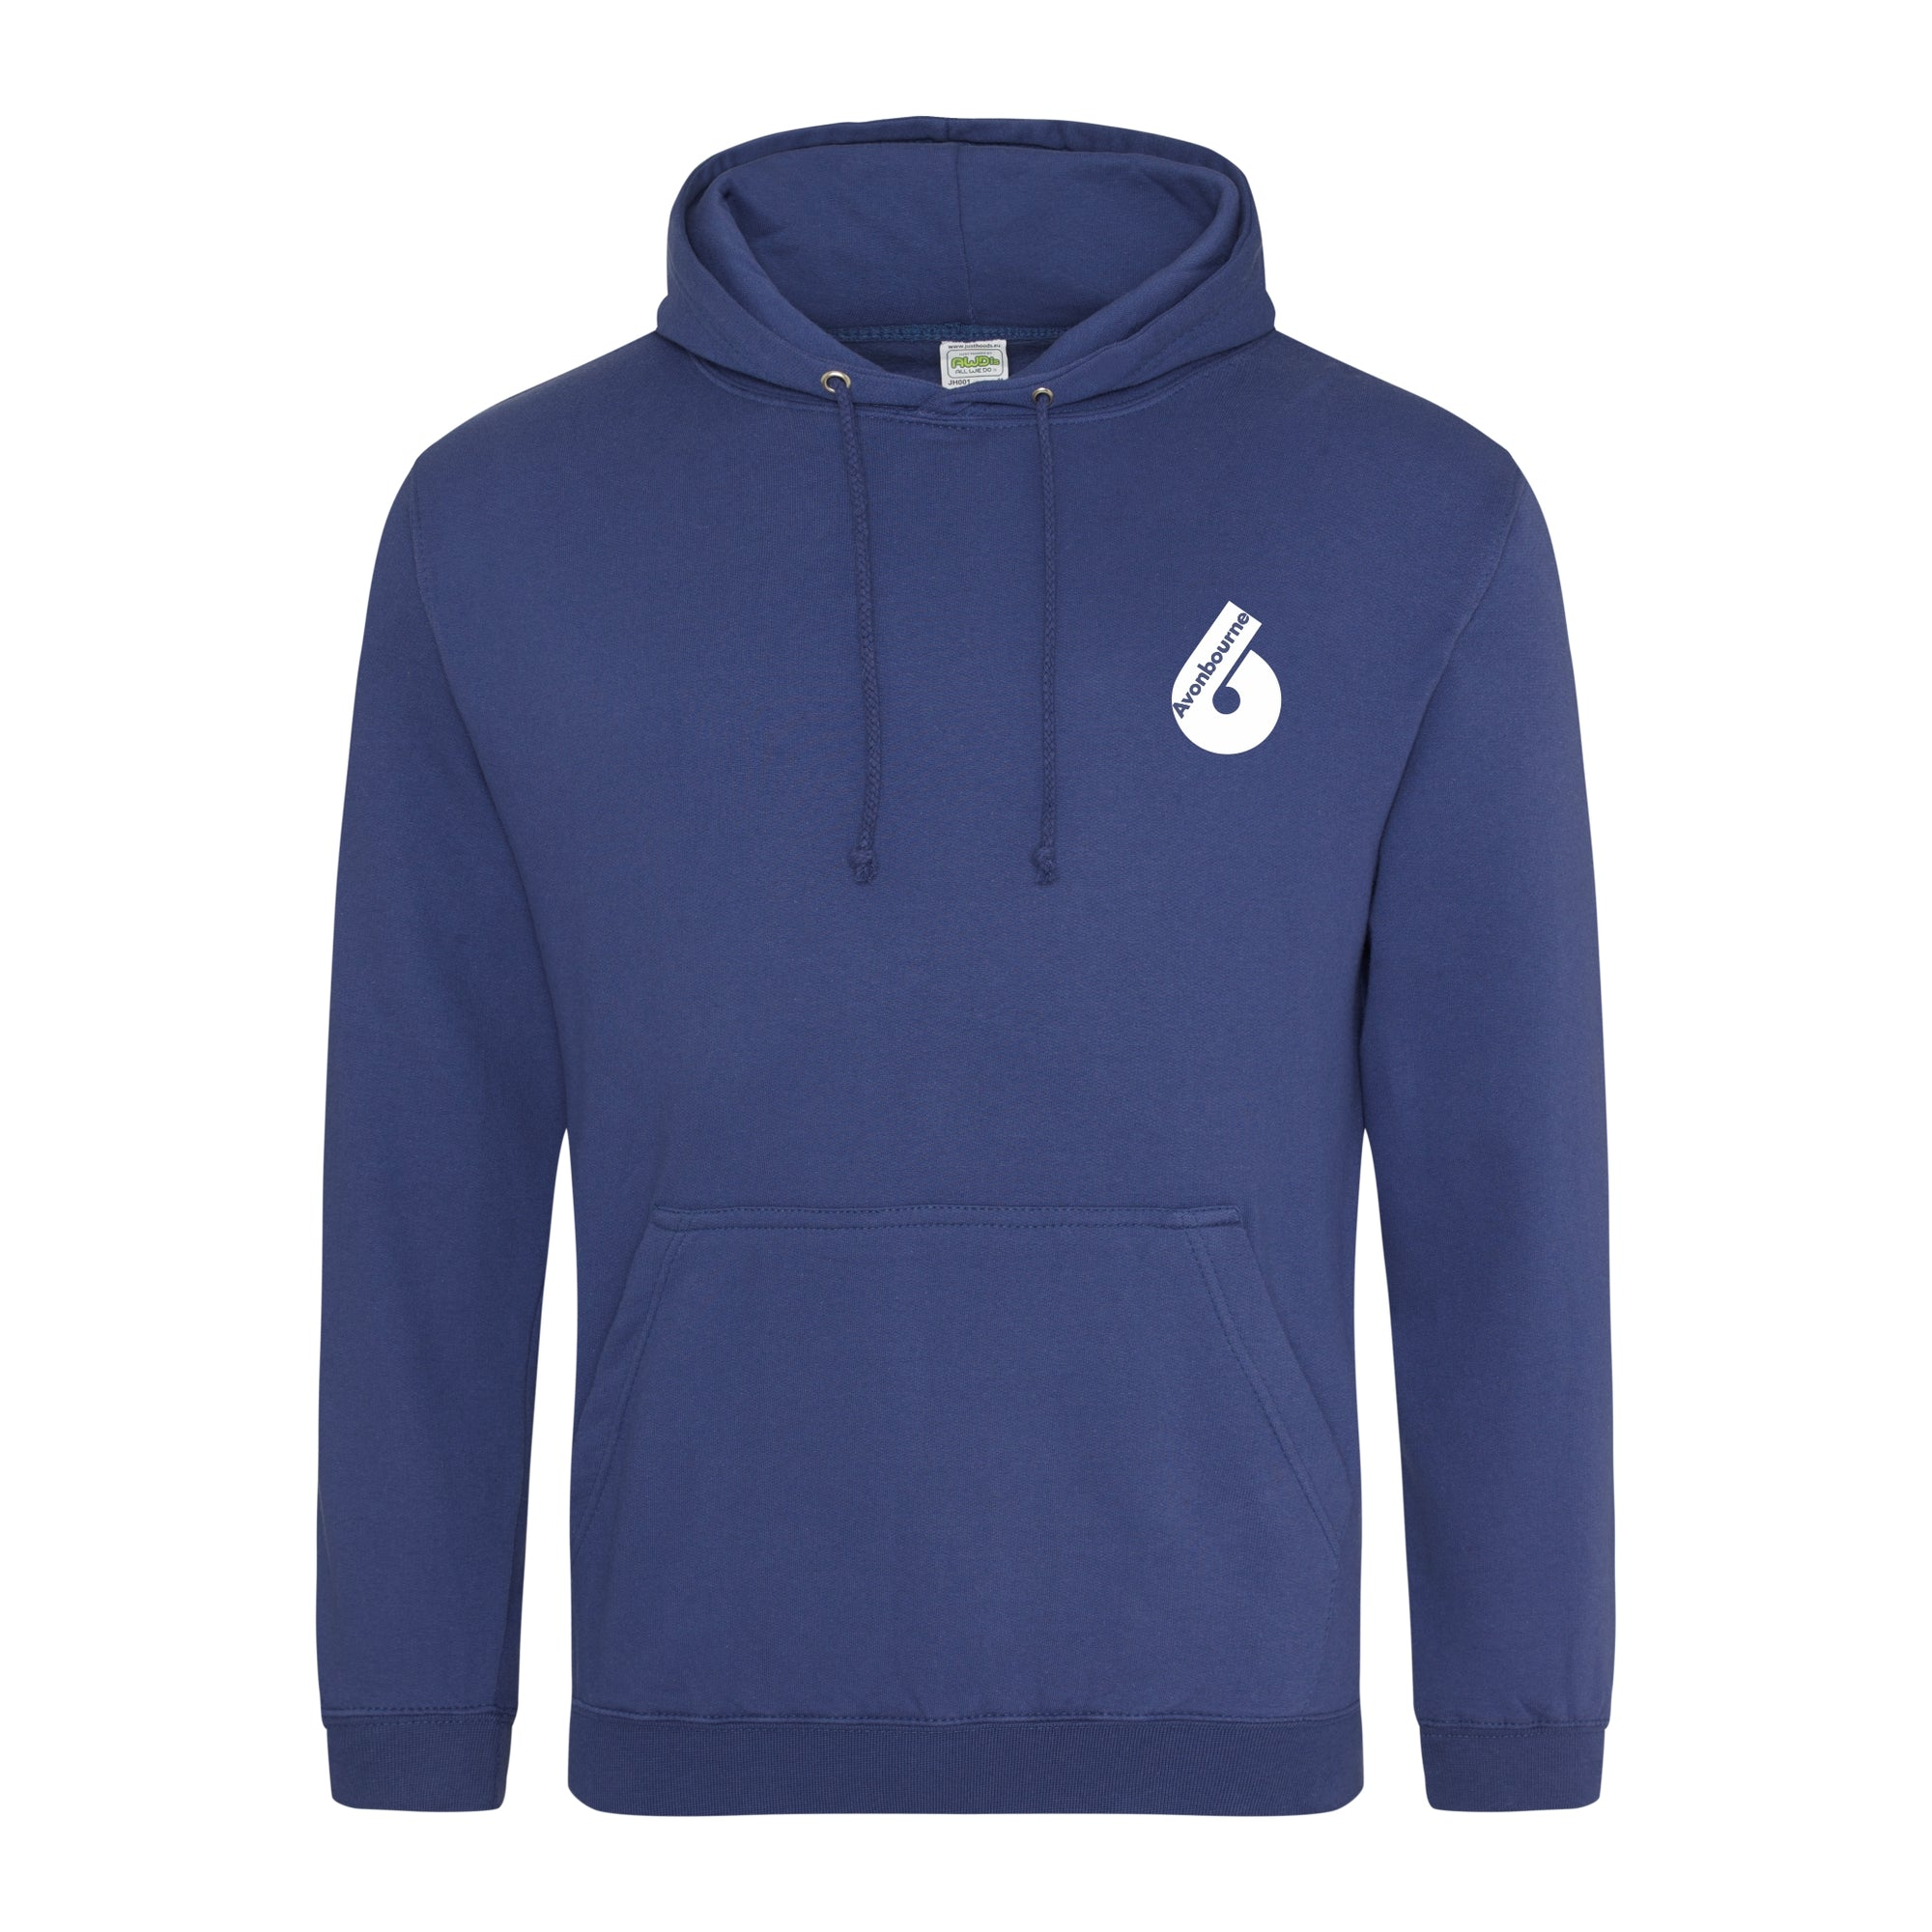 Avonbourne 6th Form Leavers Hoody 2019 - Denim Blue